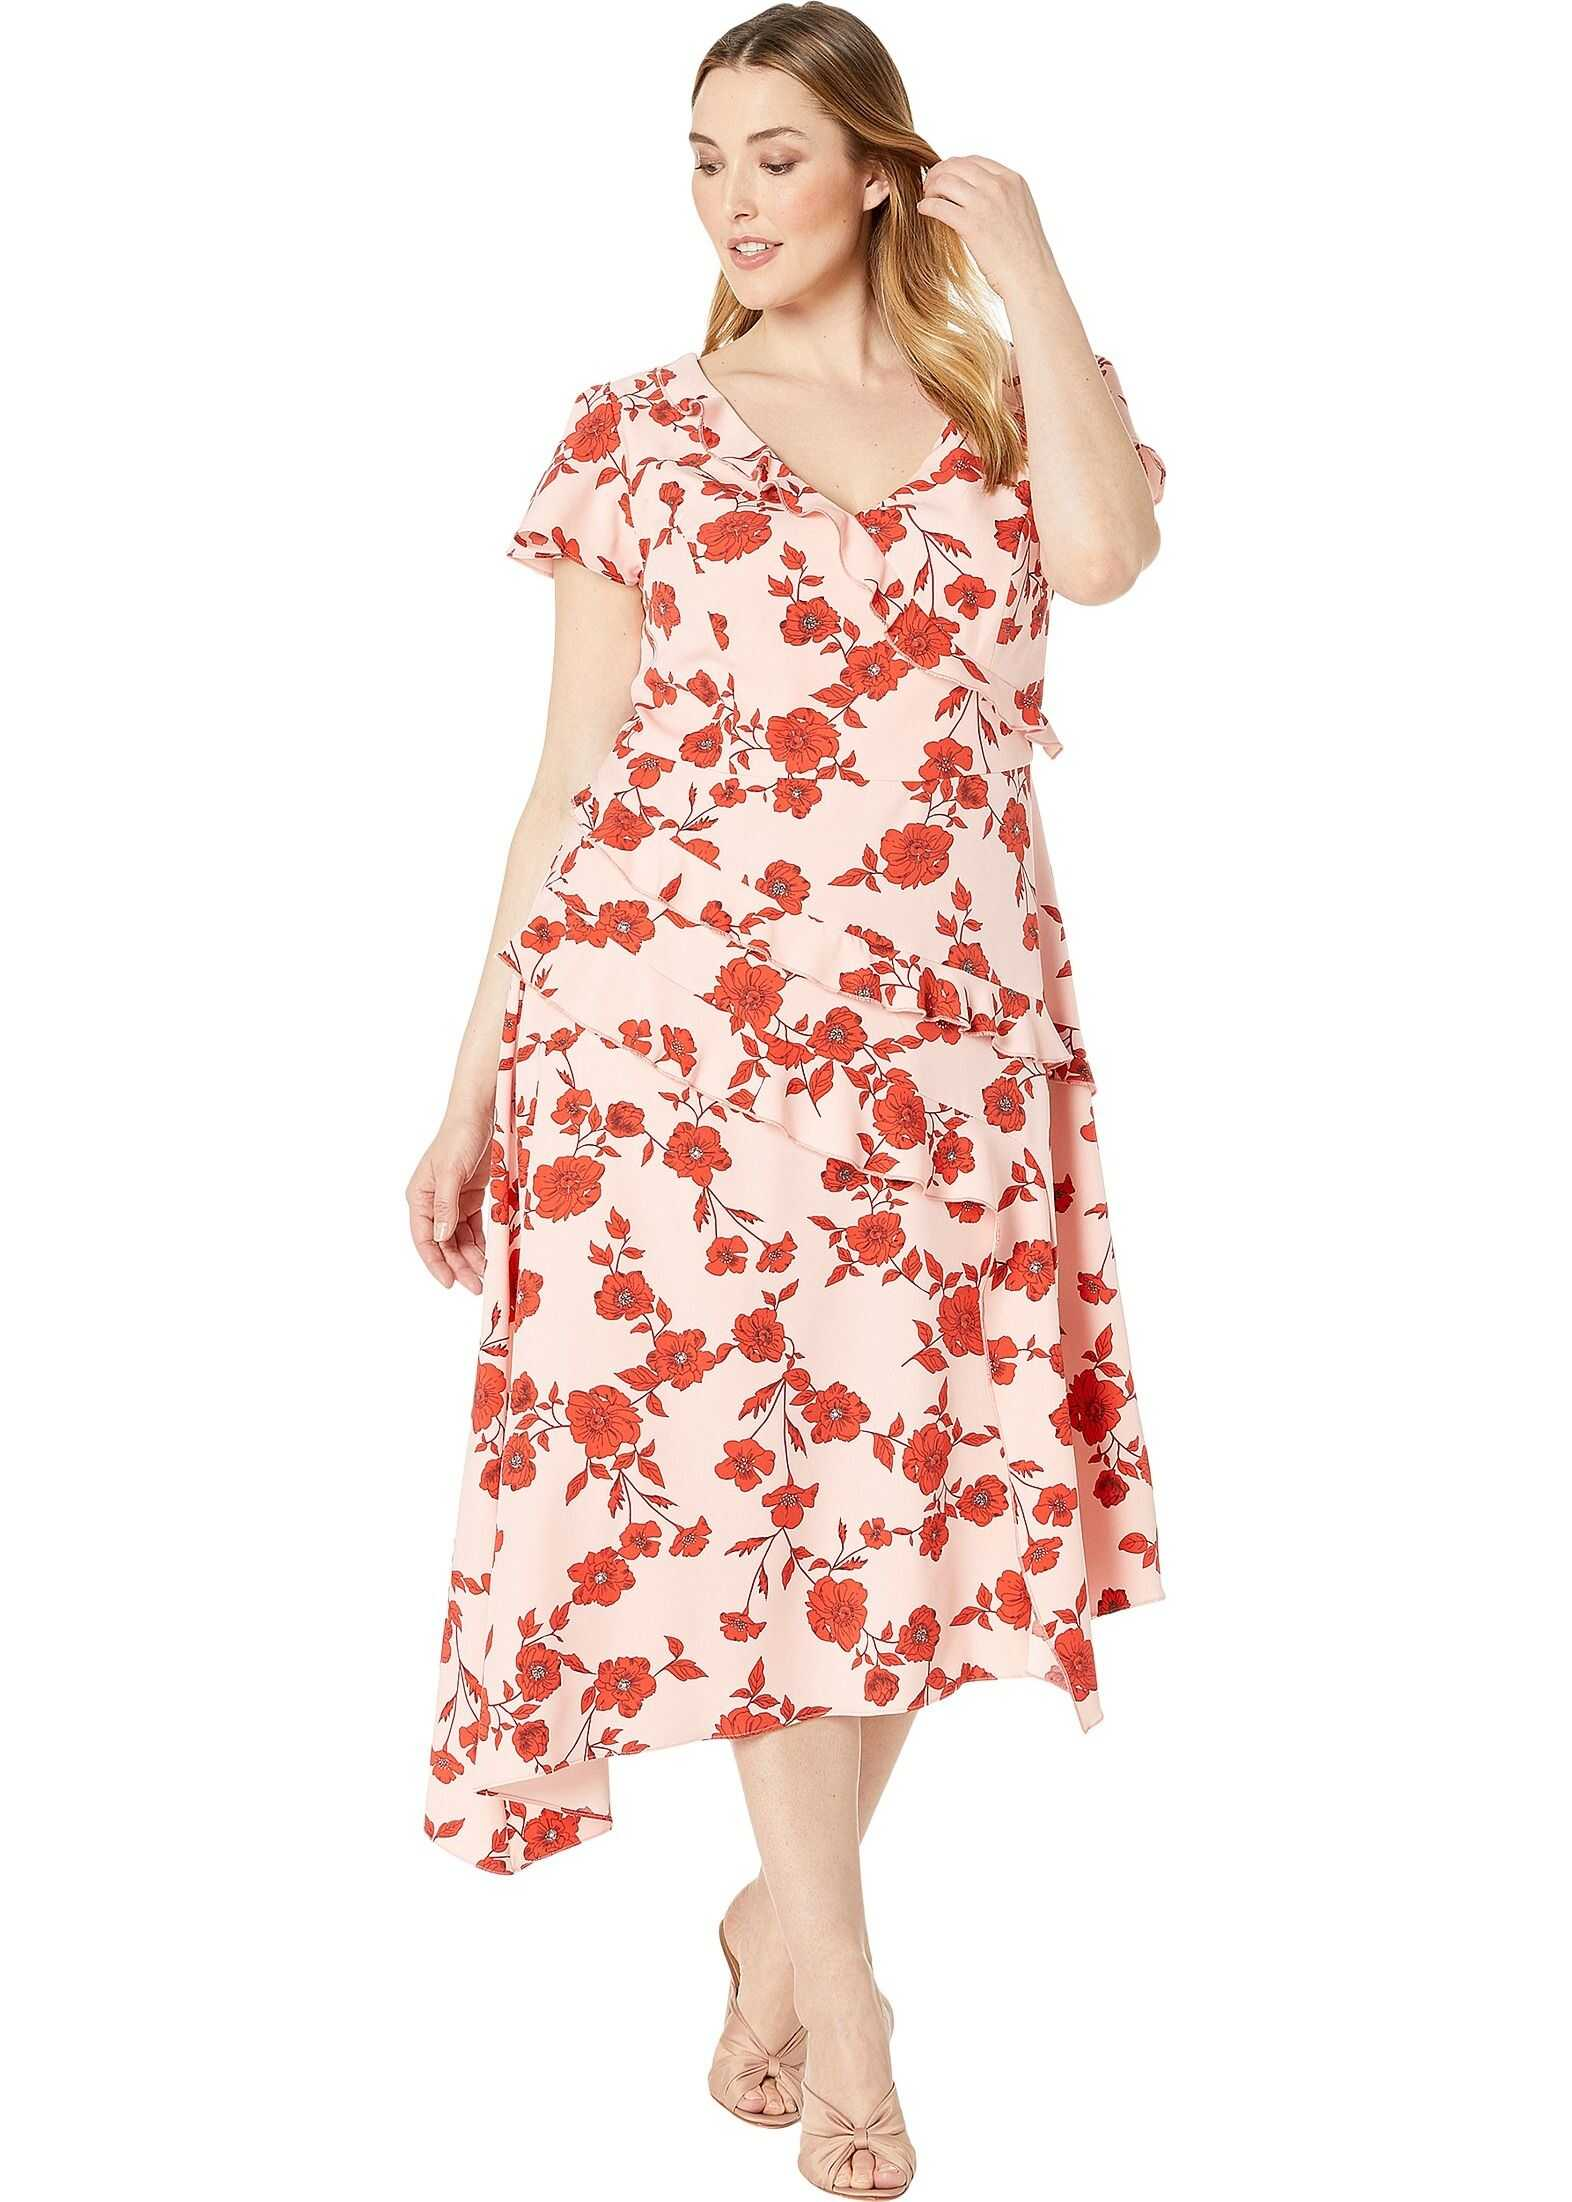 Adrianna Papell Plus Size Gauzy Crepe Floral Fit and Flare Dress Pink/Red Multi